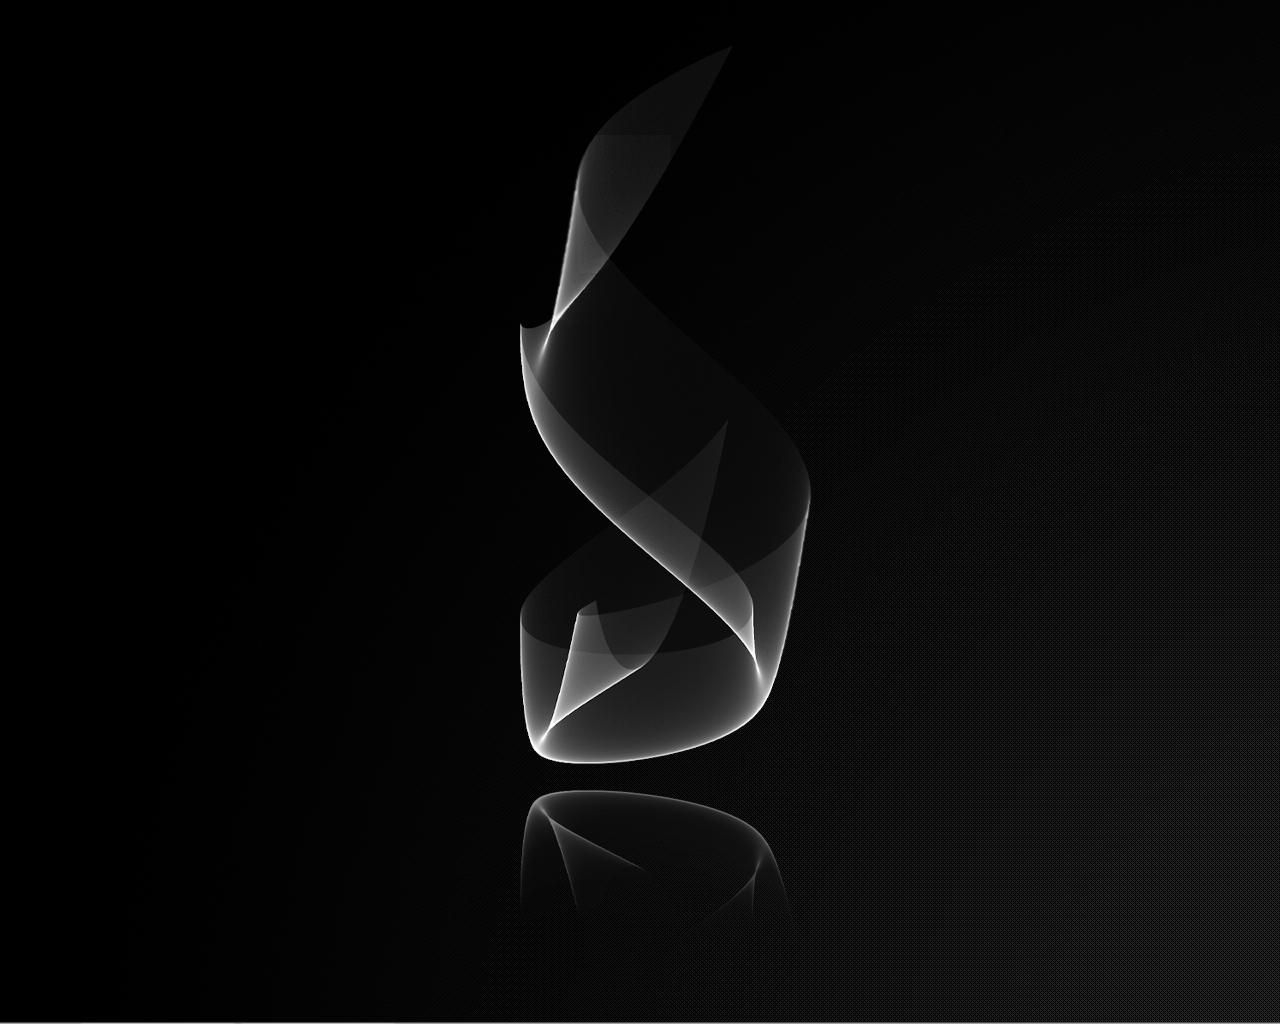 Abstract Abstract Wallpaper Hd Wallpapers High Definition 100 Hd Quality Dark Wallpaper Abstract Black Wallpaper